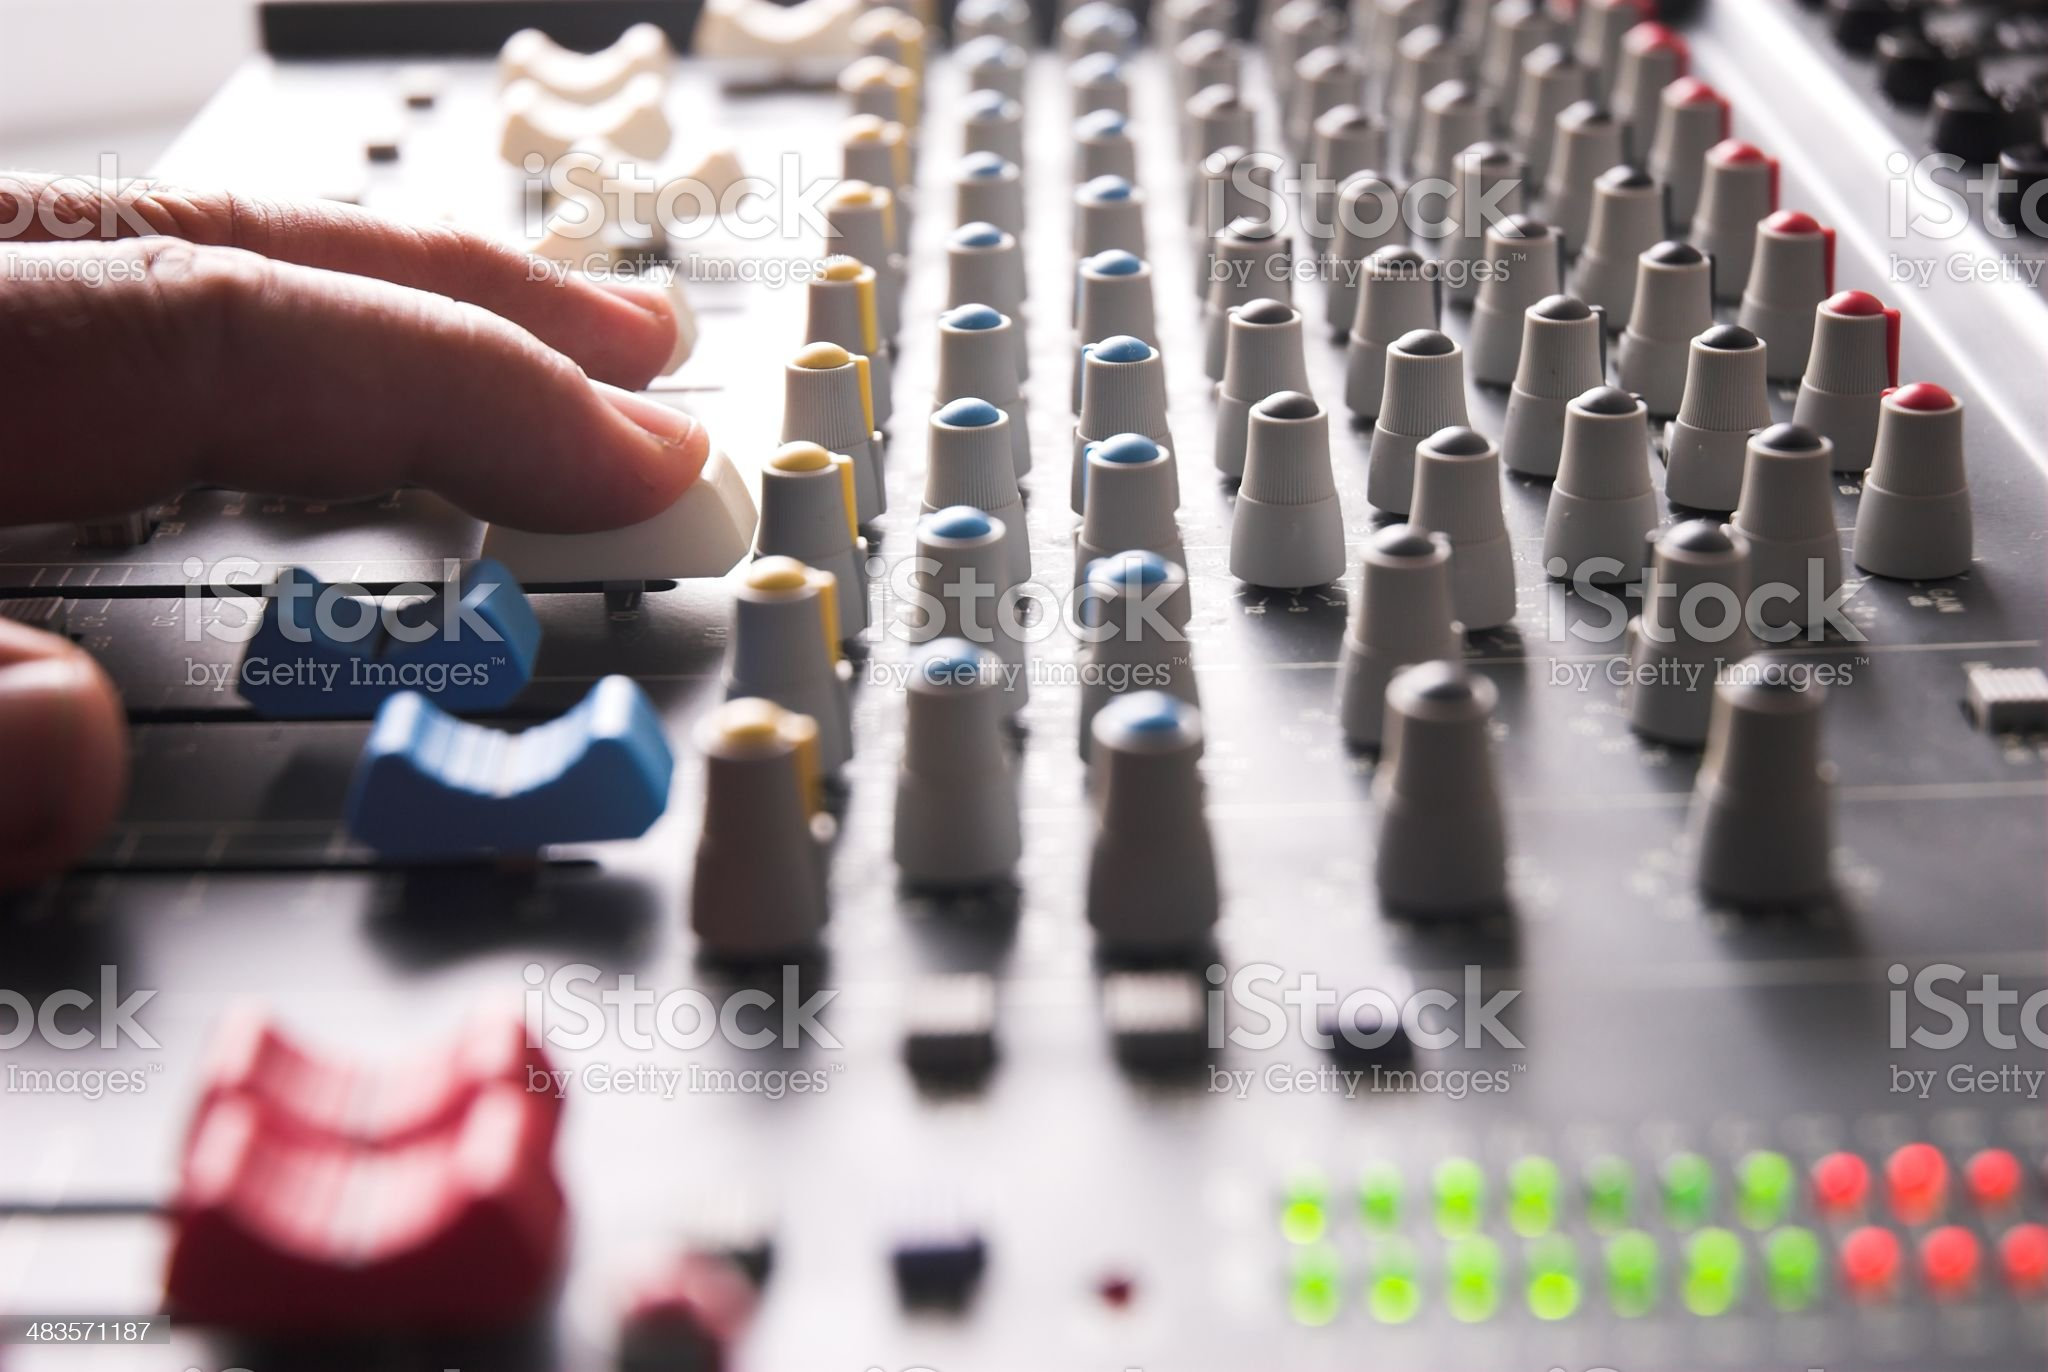 Recording studio Mixer royalty-free stock photo